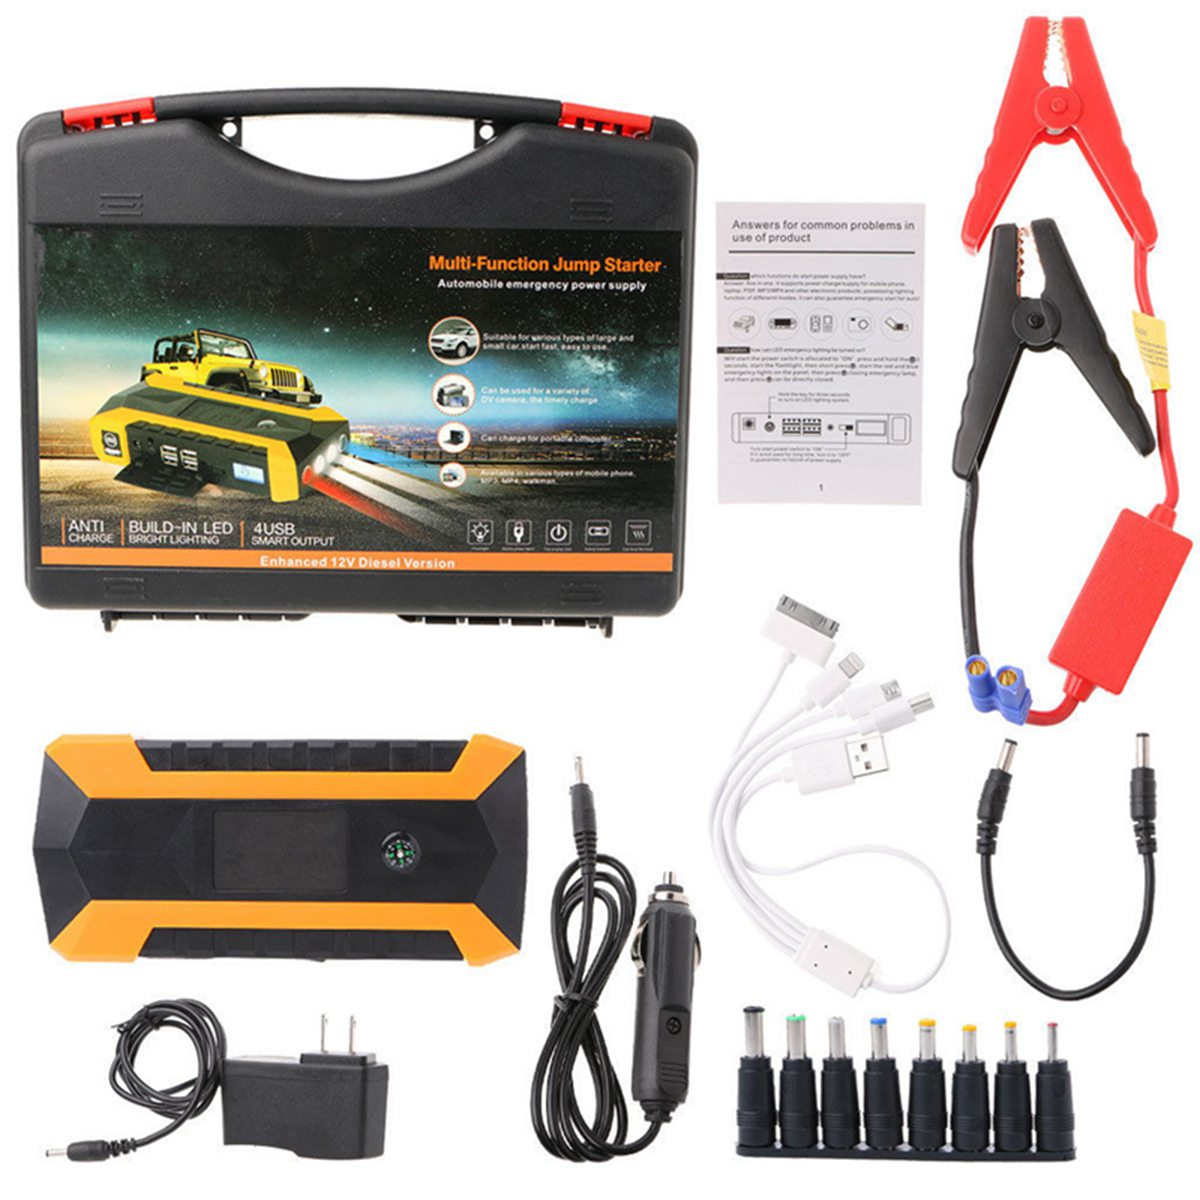 89800mAh LED Emergency Car Jump Starter 12V 4USB Charger Battery Power Bank Portable Car Battery Booster Charger Starting Device multifunction jump starter 89800mah 12v 4usb 600a portable car battery booster charger booster power bank starting device